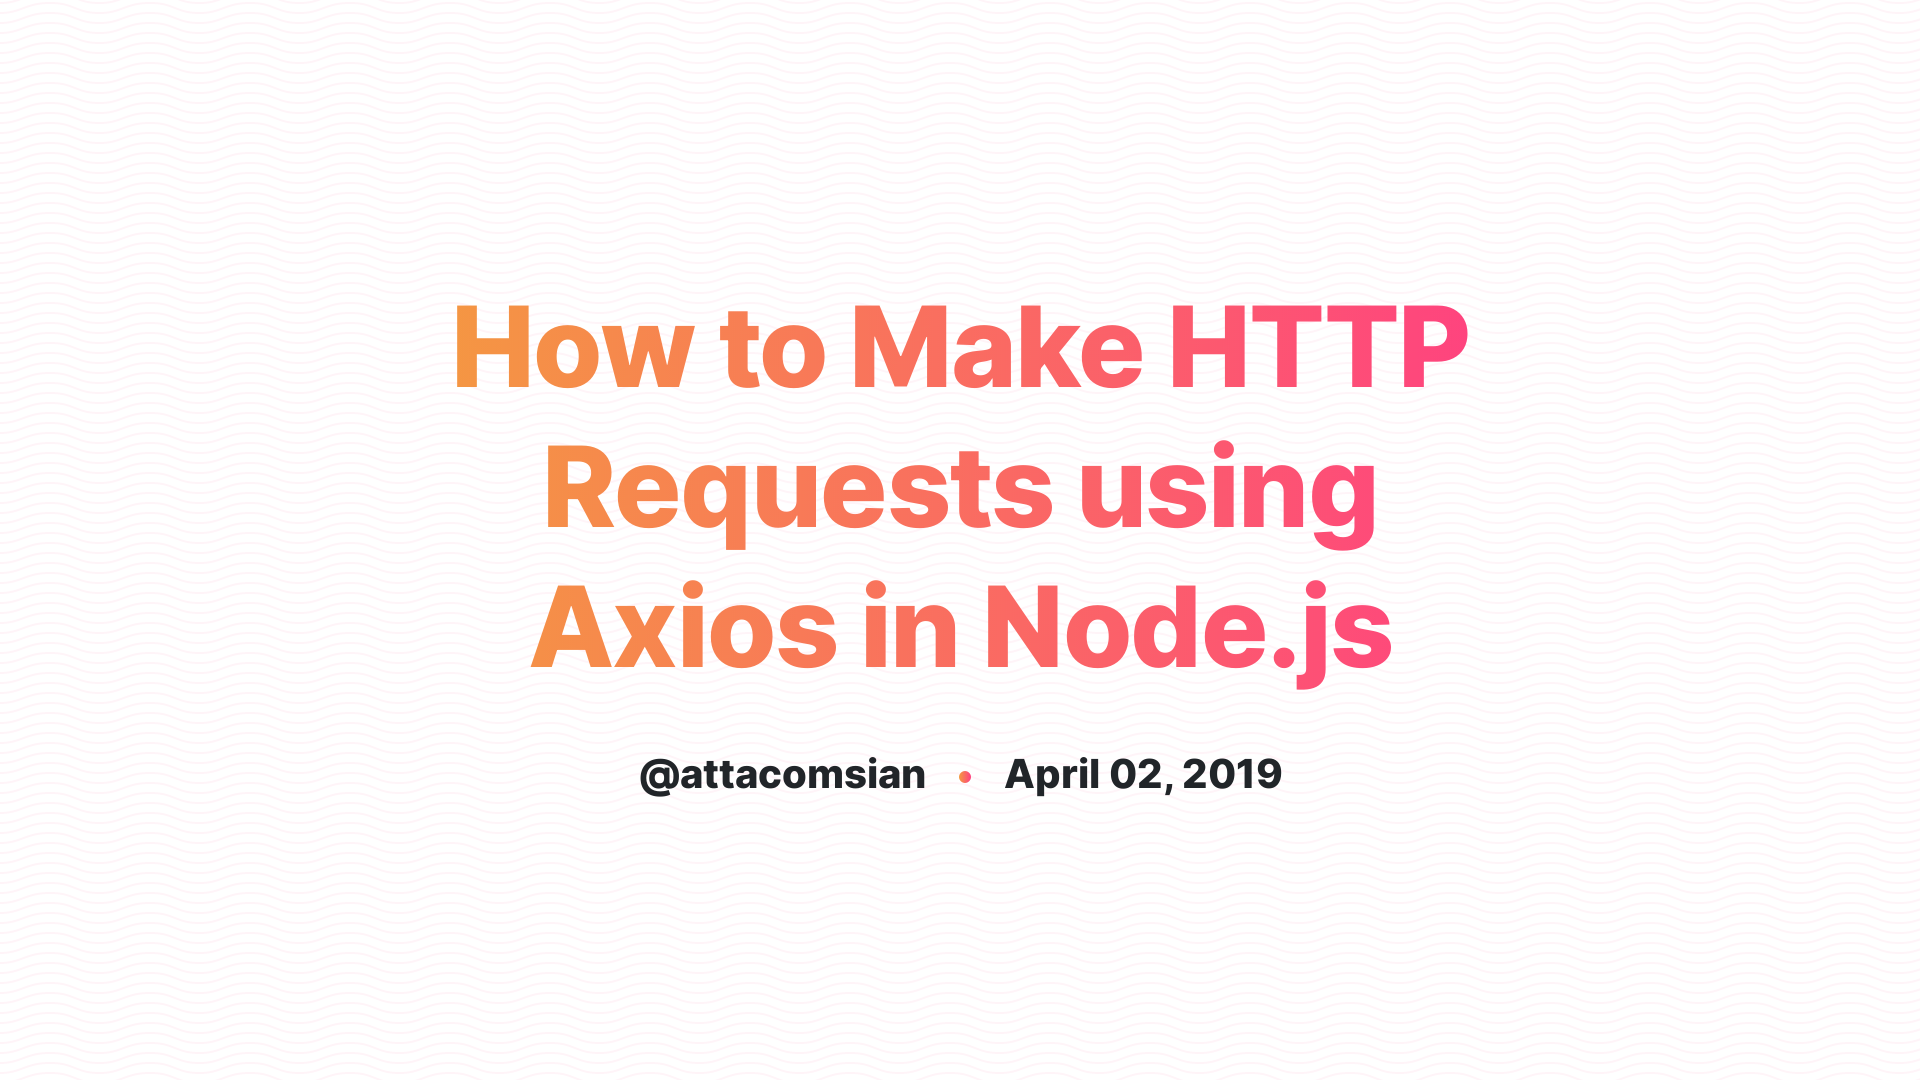 Making HTTP Requests using Axios